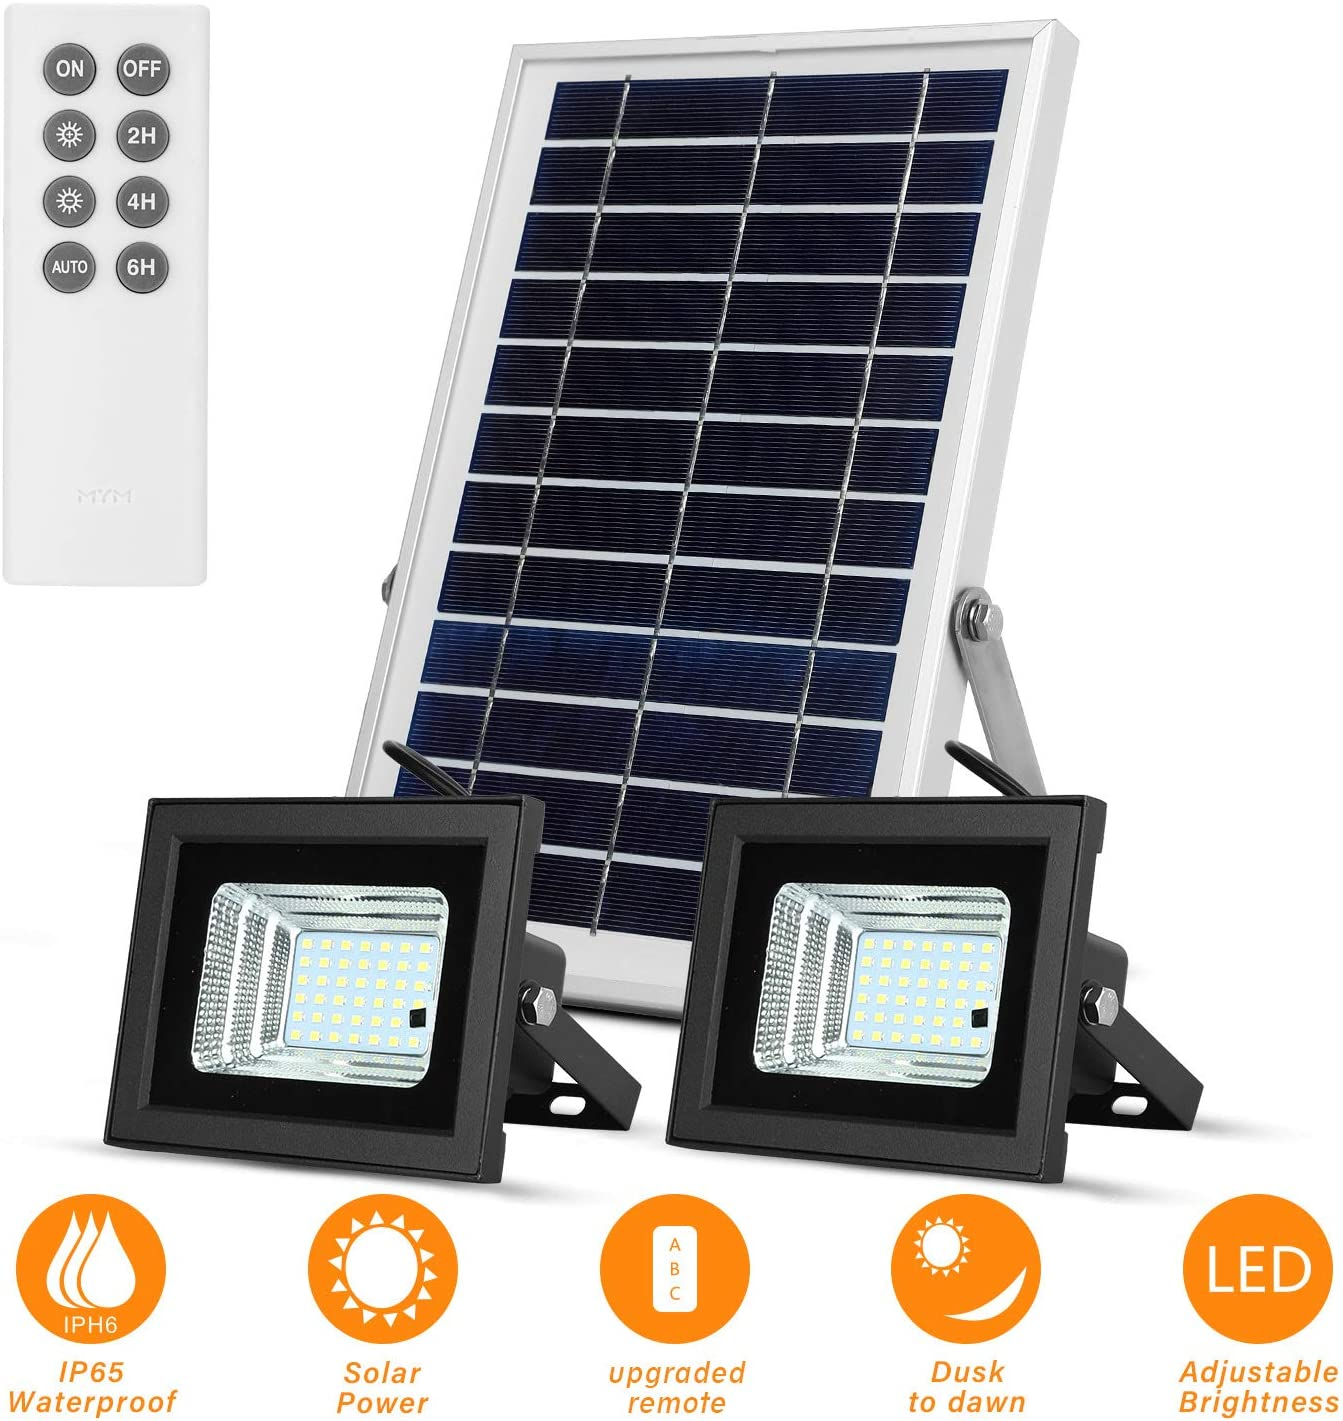 Solar Flood Lights Outdoor Remote 42 Dual 6500K Ranking TOP9 LEDs Dusk Ranking TOP1